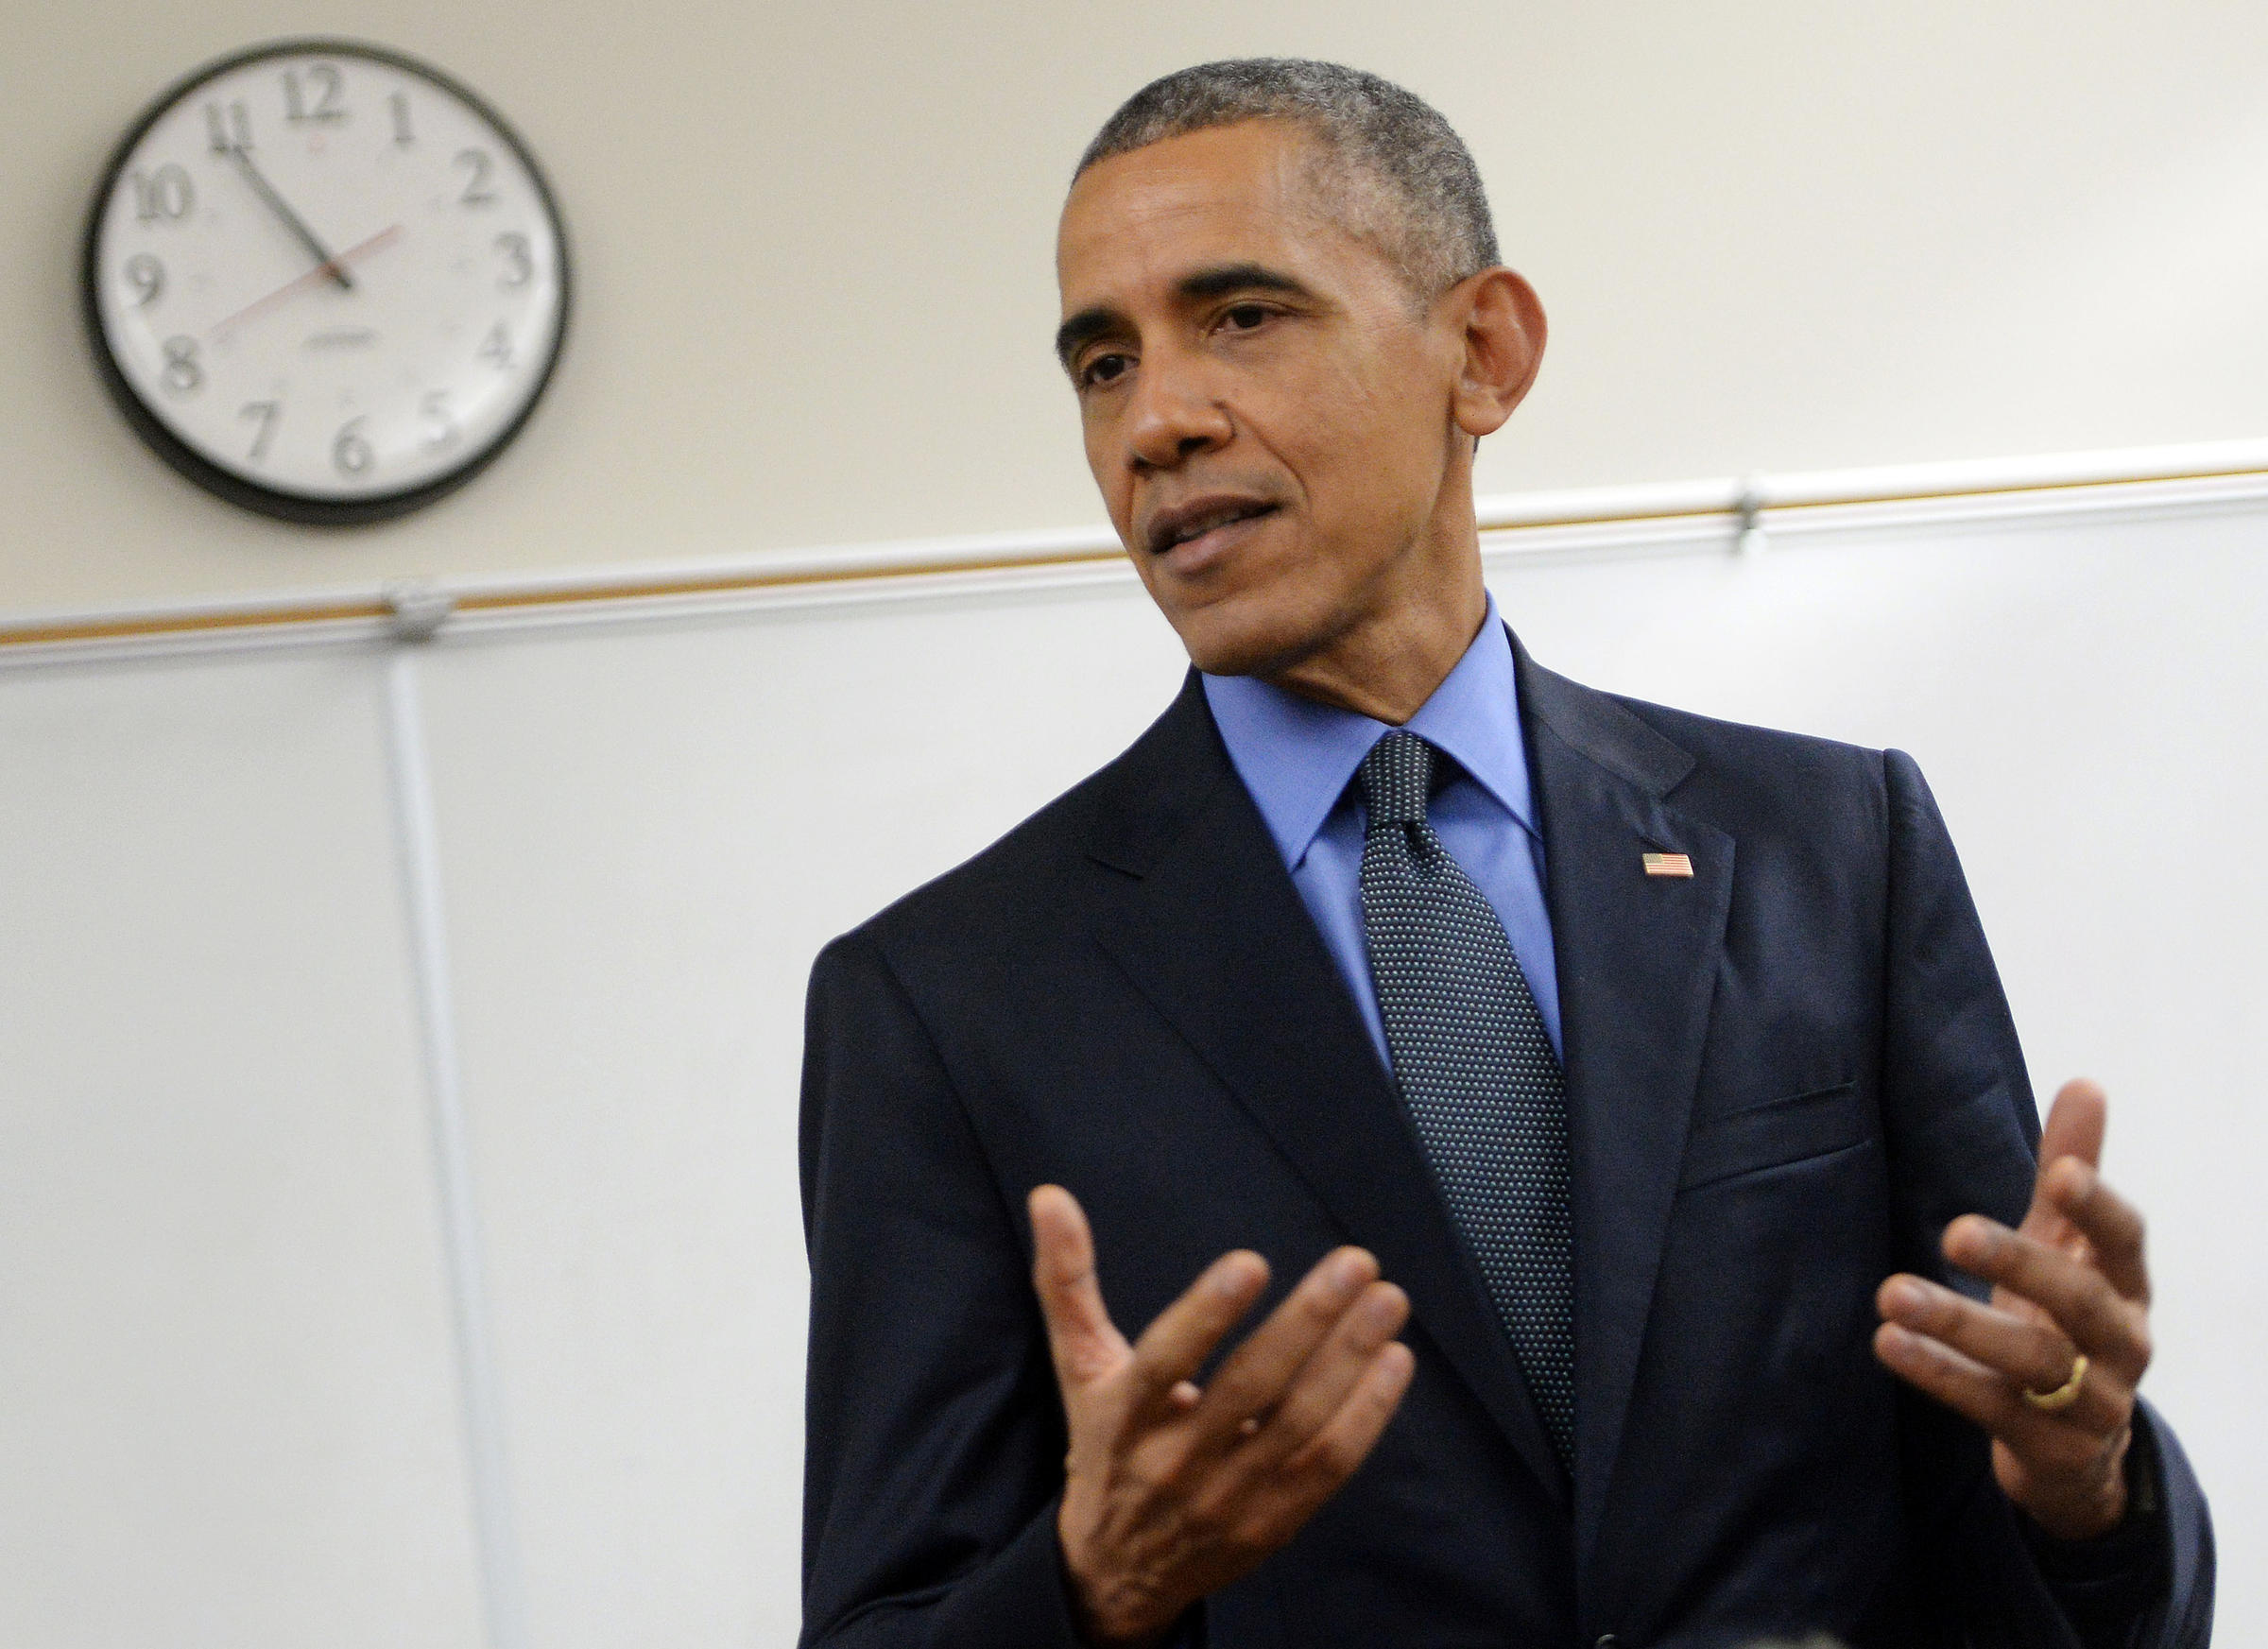 obama starts 2016 a fight over gun control wabe 90 1 fm president barack obama delivers a brief statement in a classroom at n springs high school on dec 18 2015 in san bernardino california